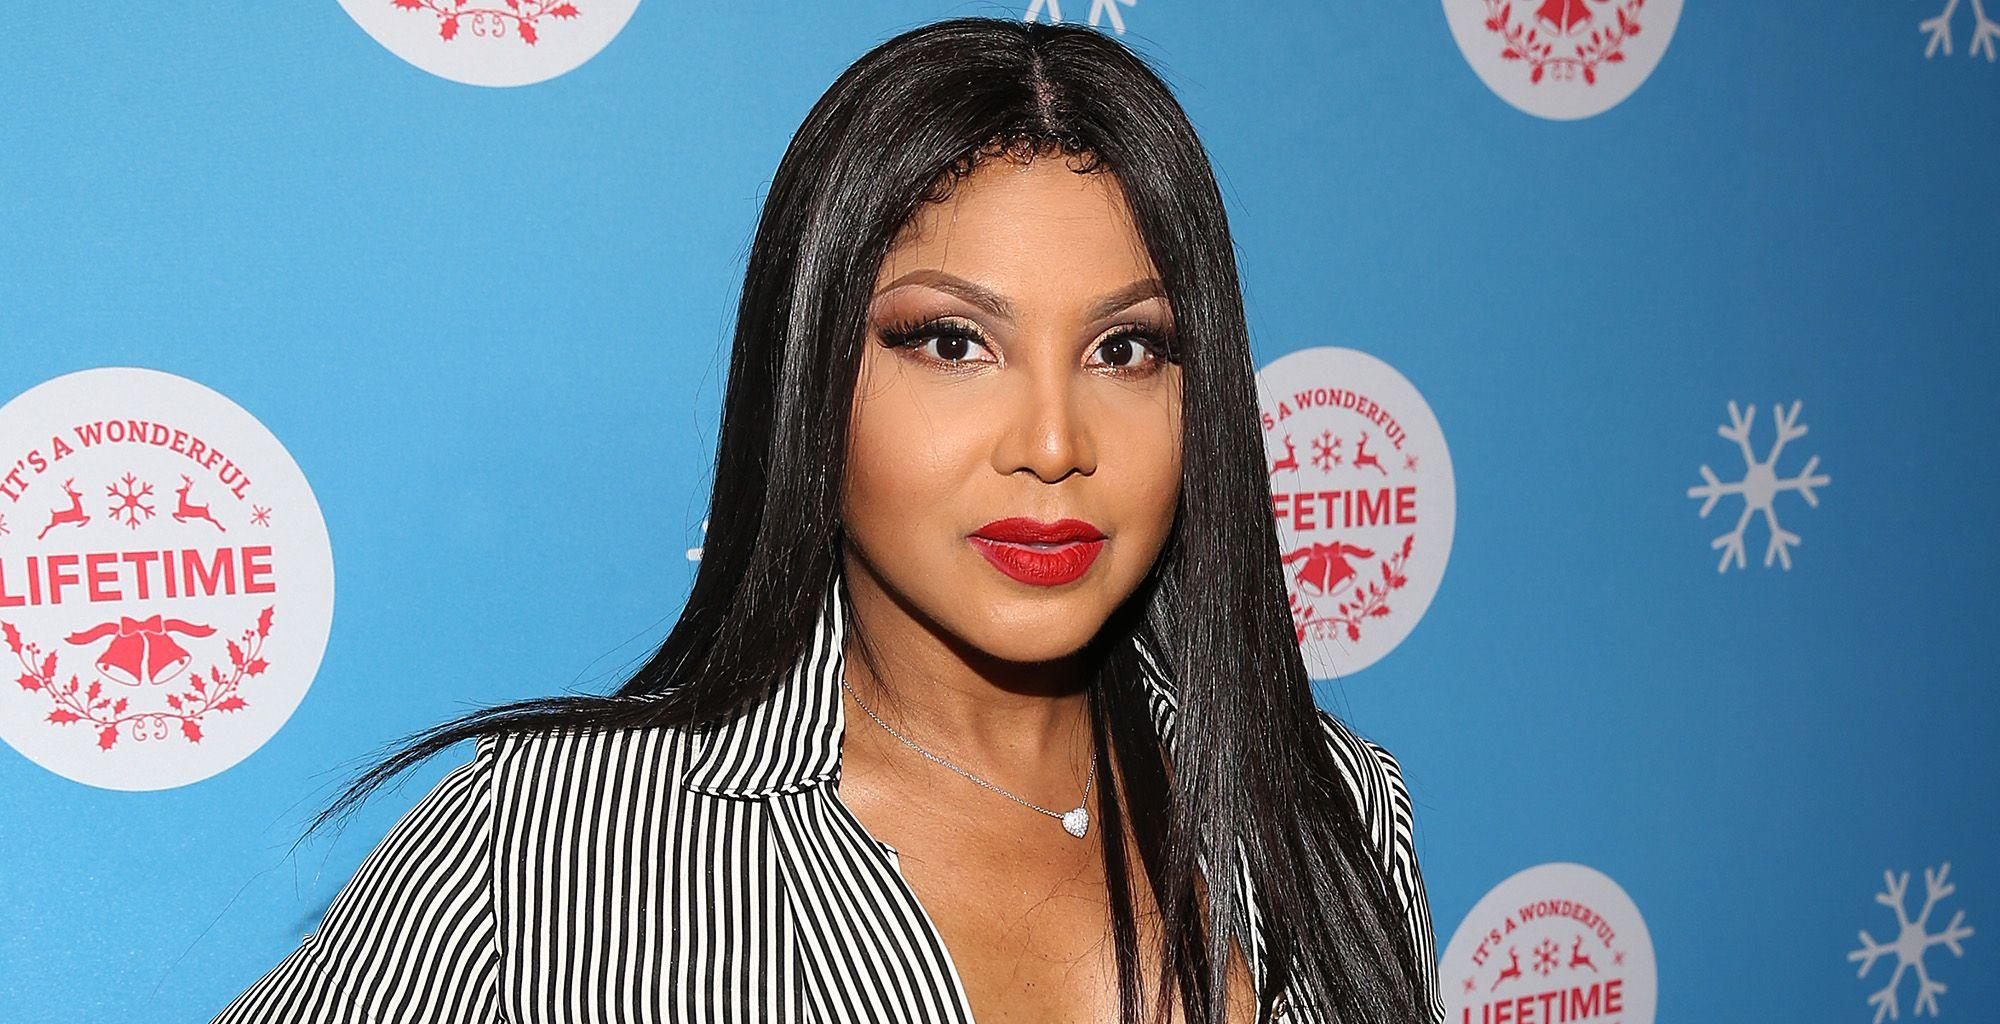 Toni Braxton Shows Fans One Of Her Favorite Masks - Check Out Her Clip